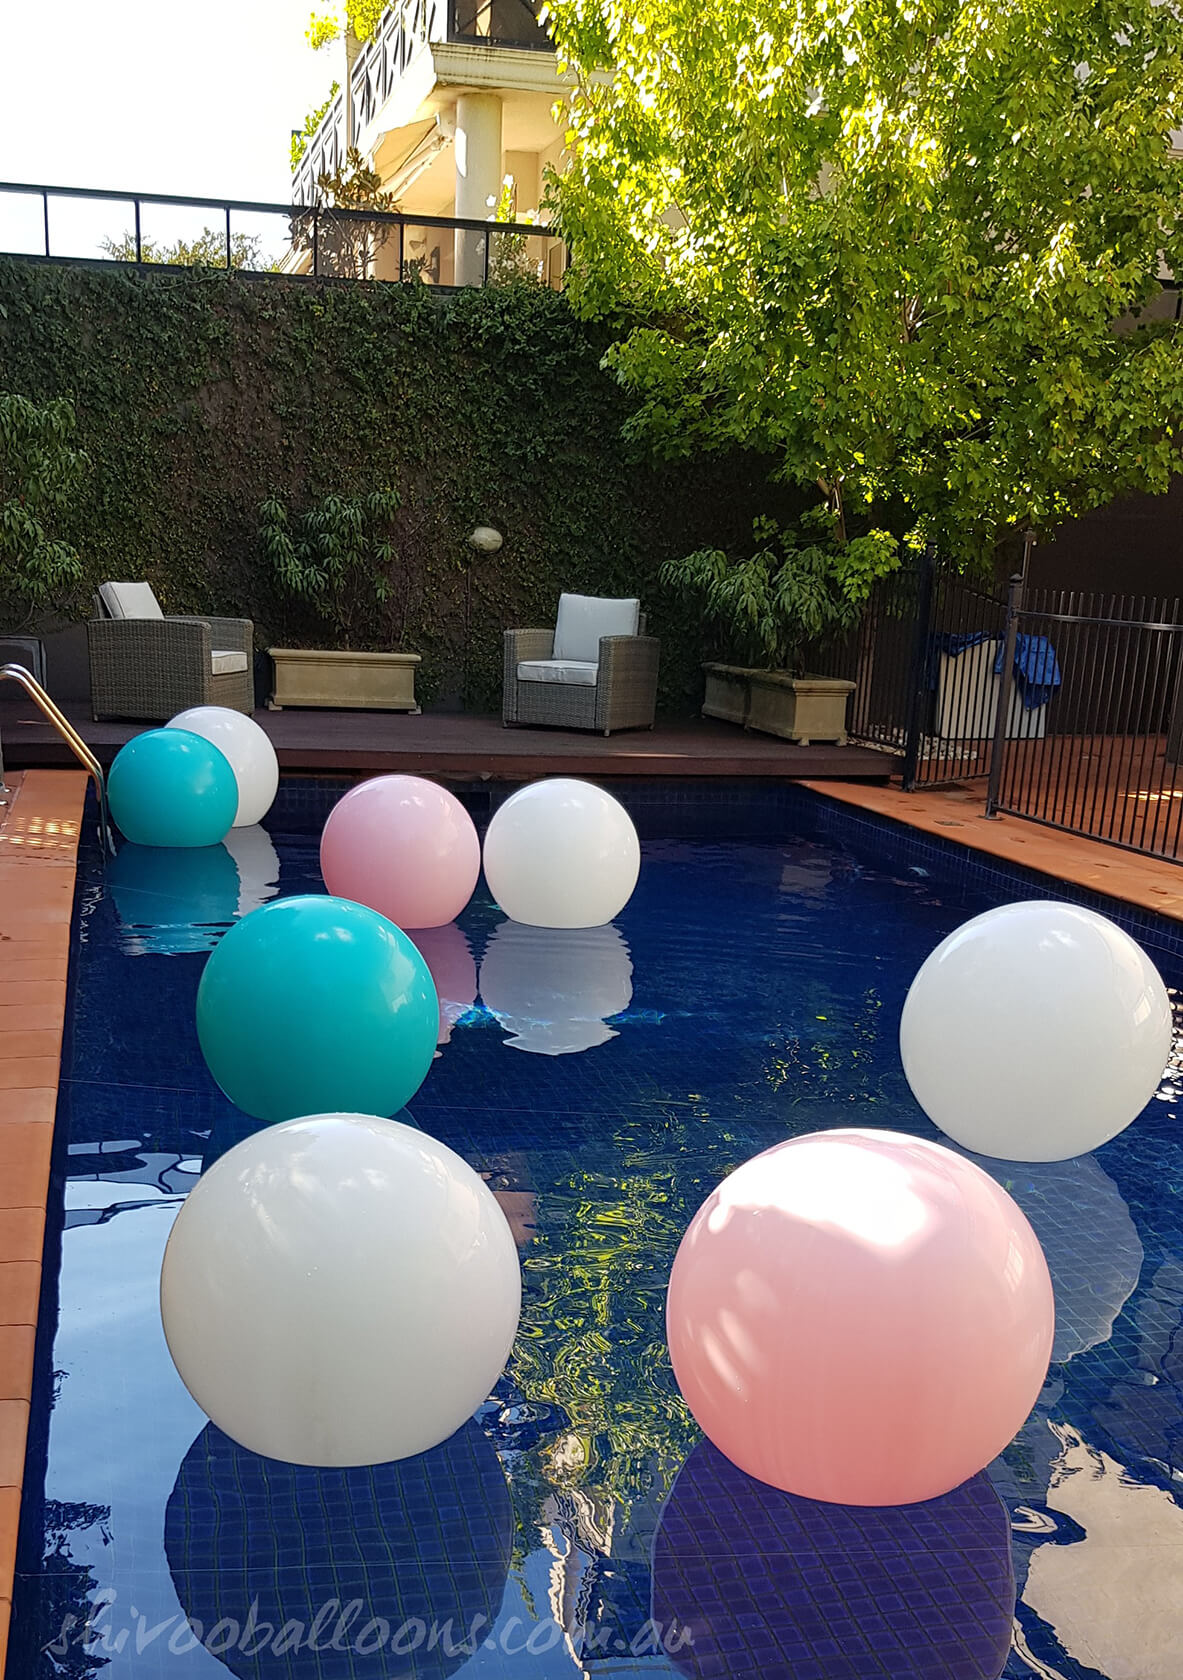 See Our Events! - image CE-54 on https://shivooballoons.com.au